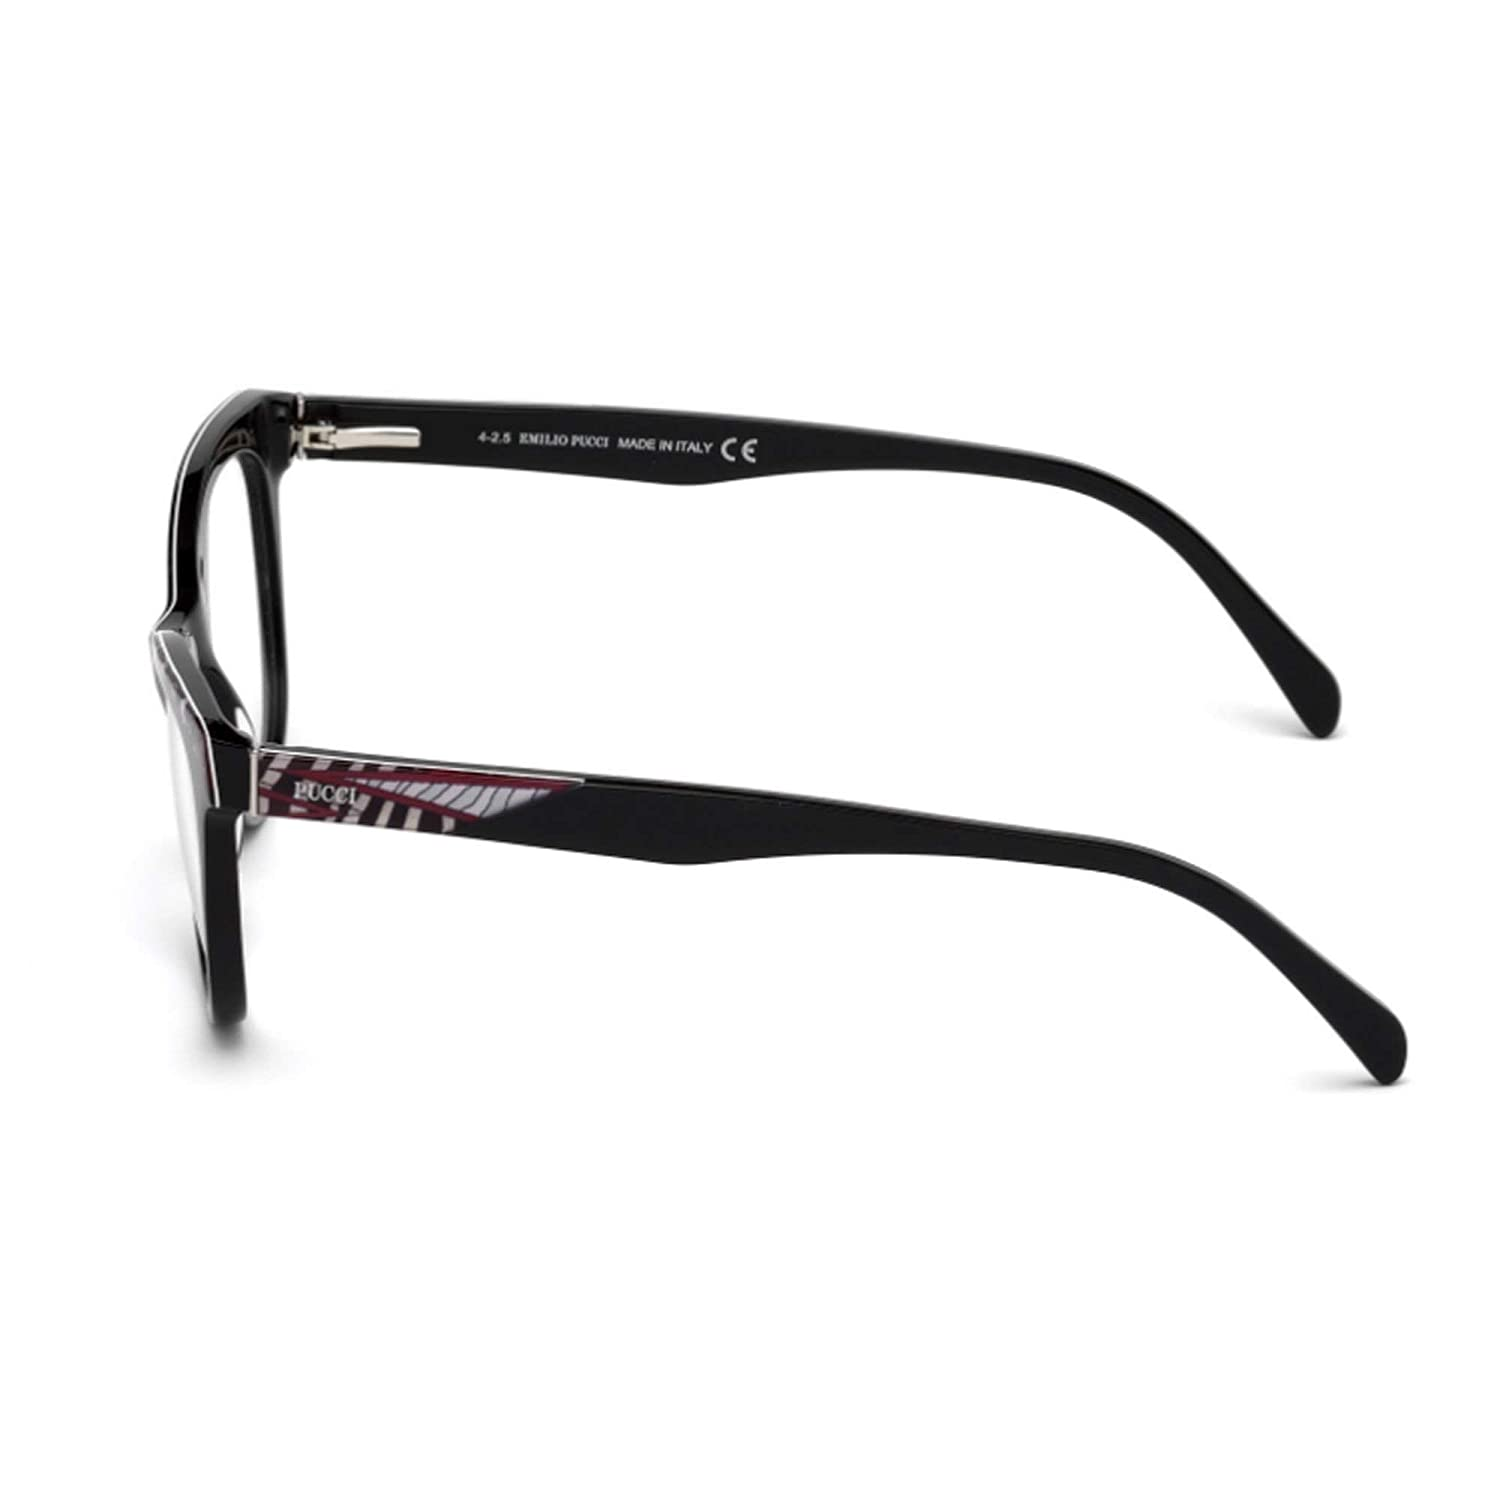 f1f9094f880f Eyeglasses Emilio Pucci EP 5036 EP5036 001 shiny black at Amazon Men s  Clothing store